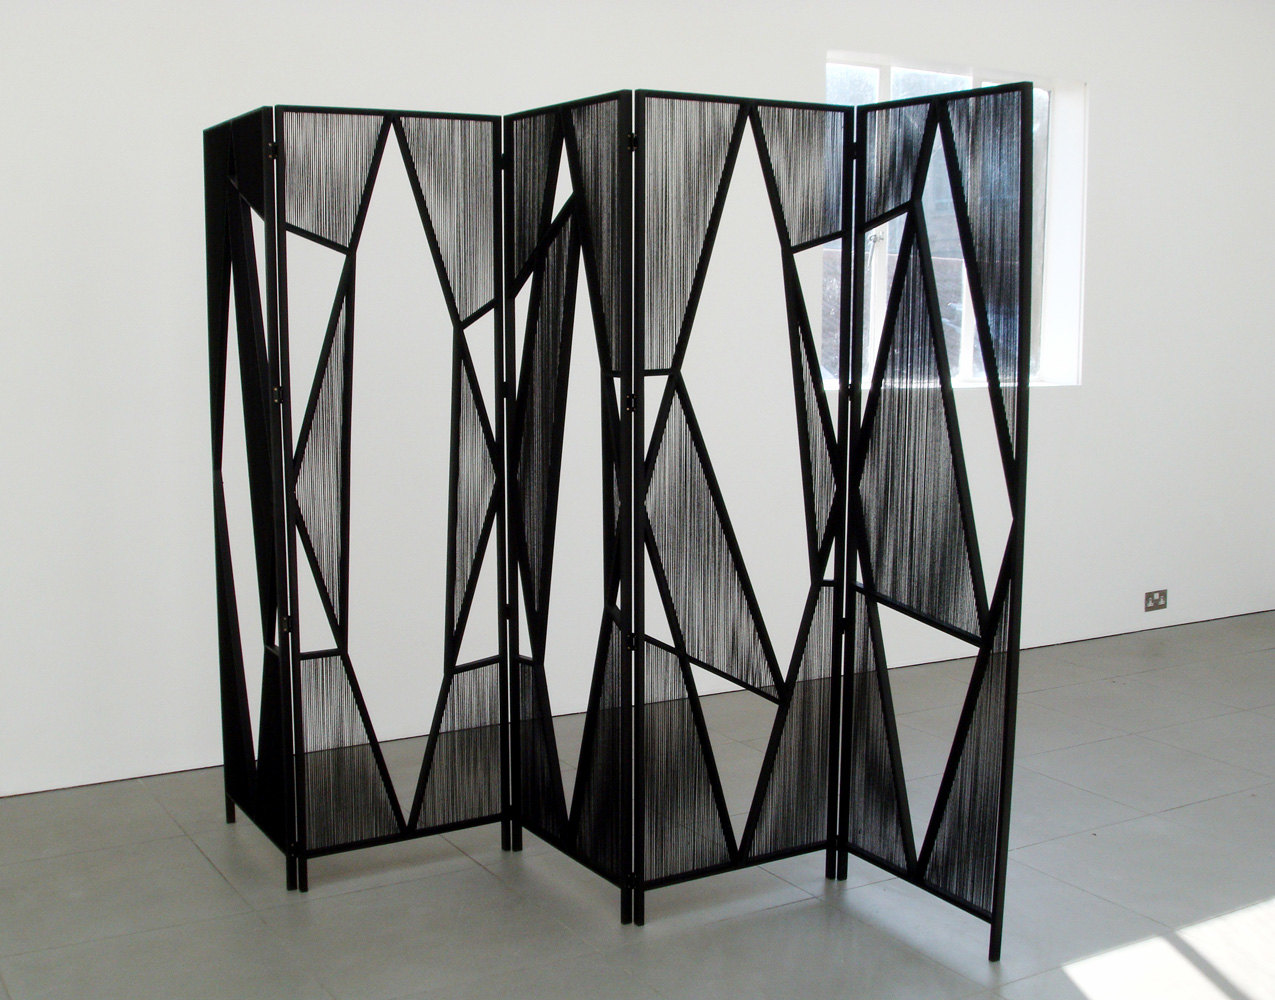 Eva Berendes, Untitled, 2008, mixed media, Cell Project Space